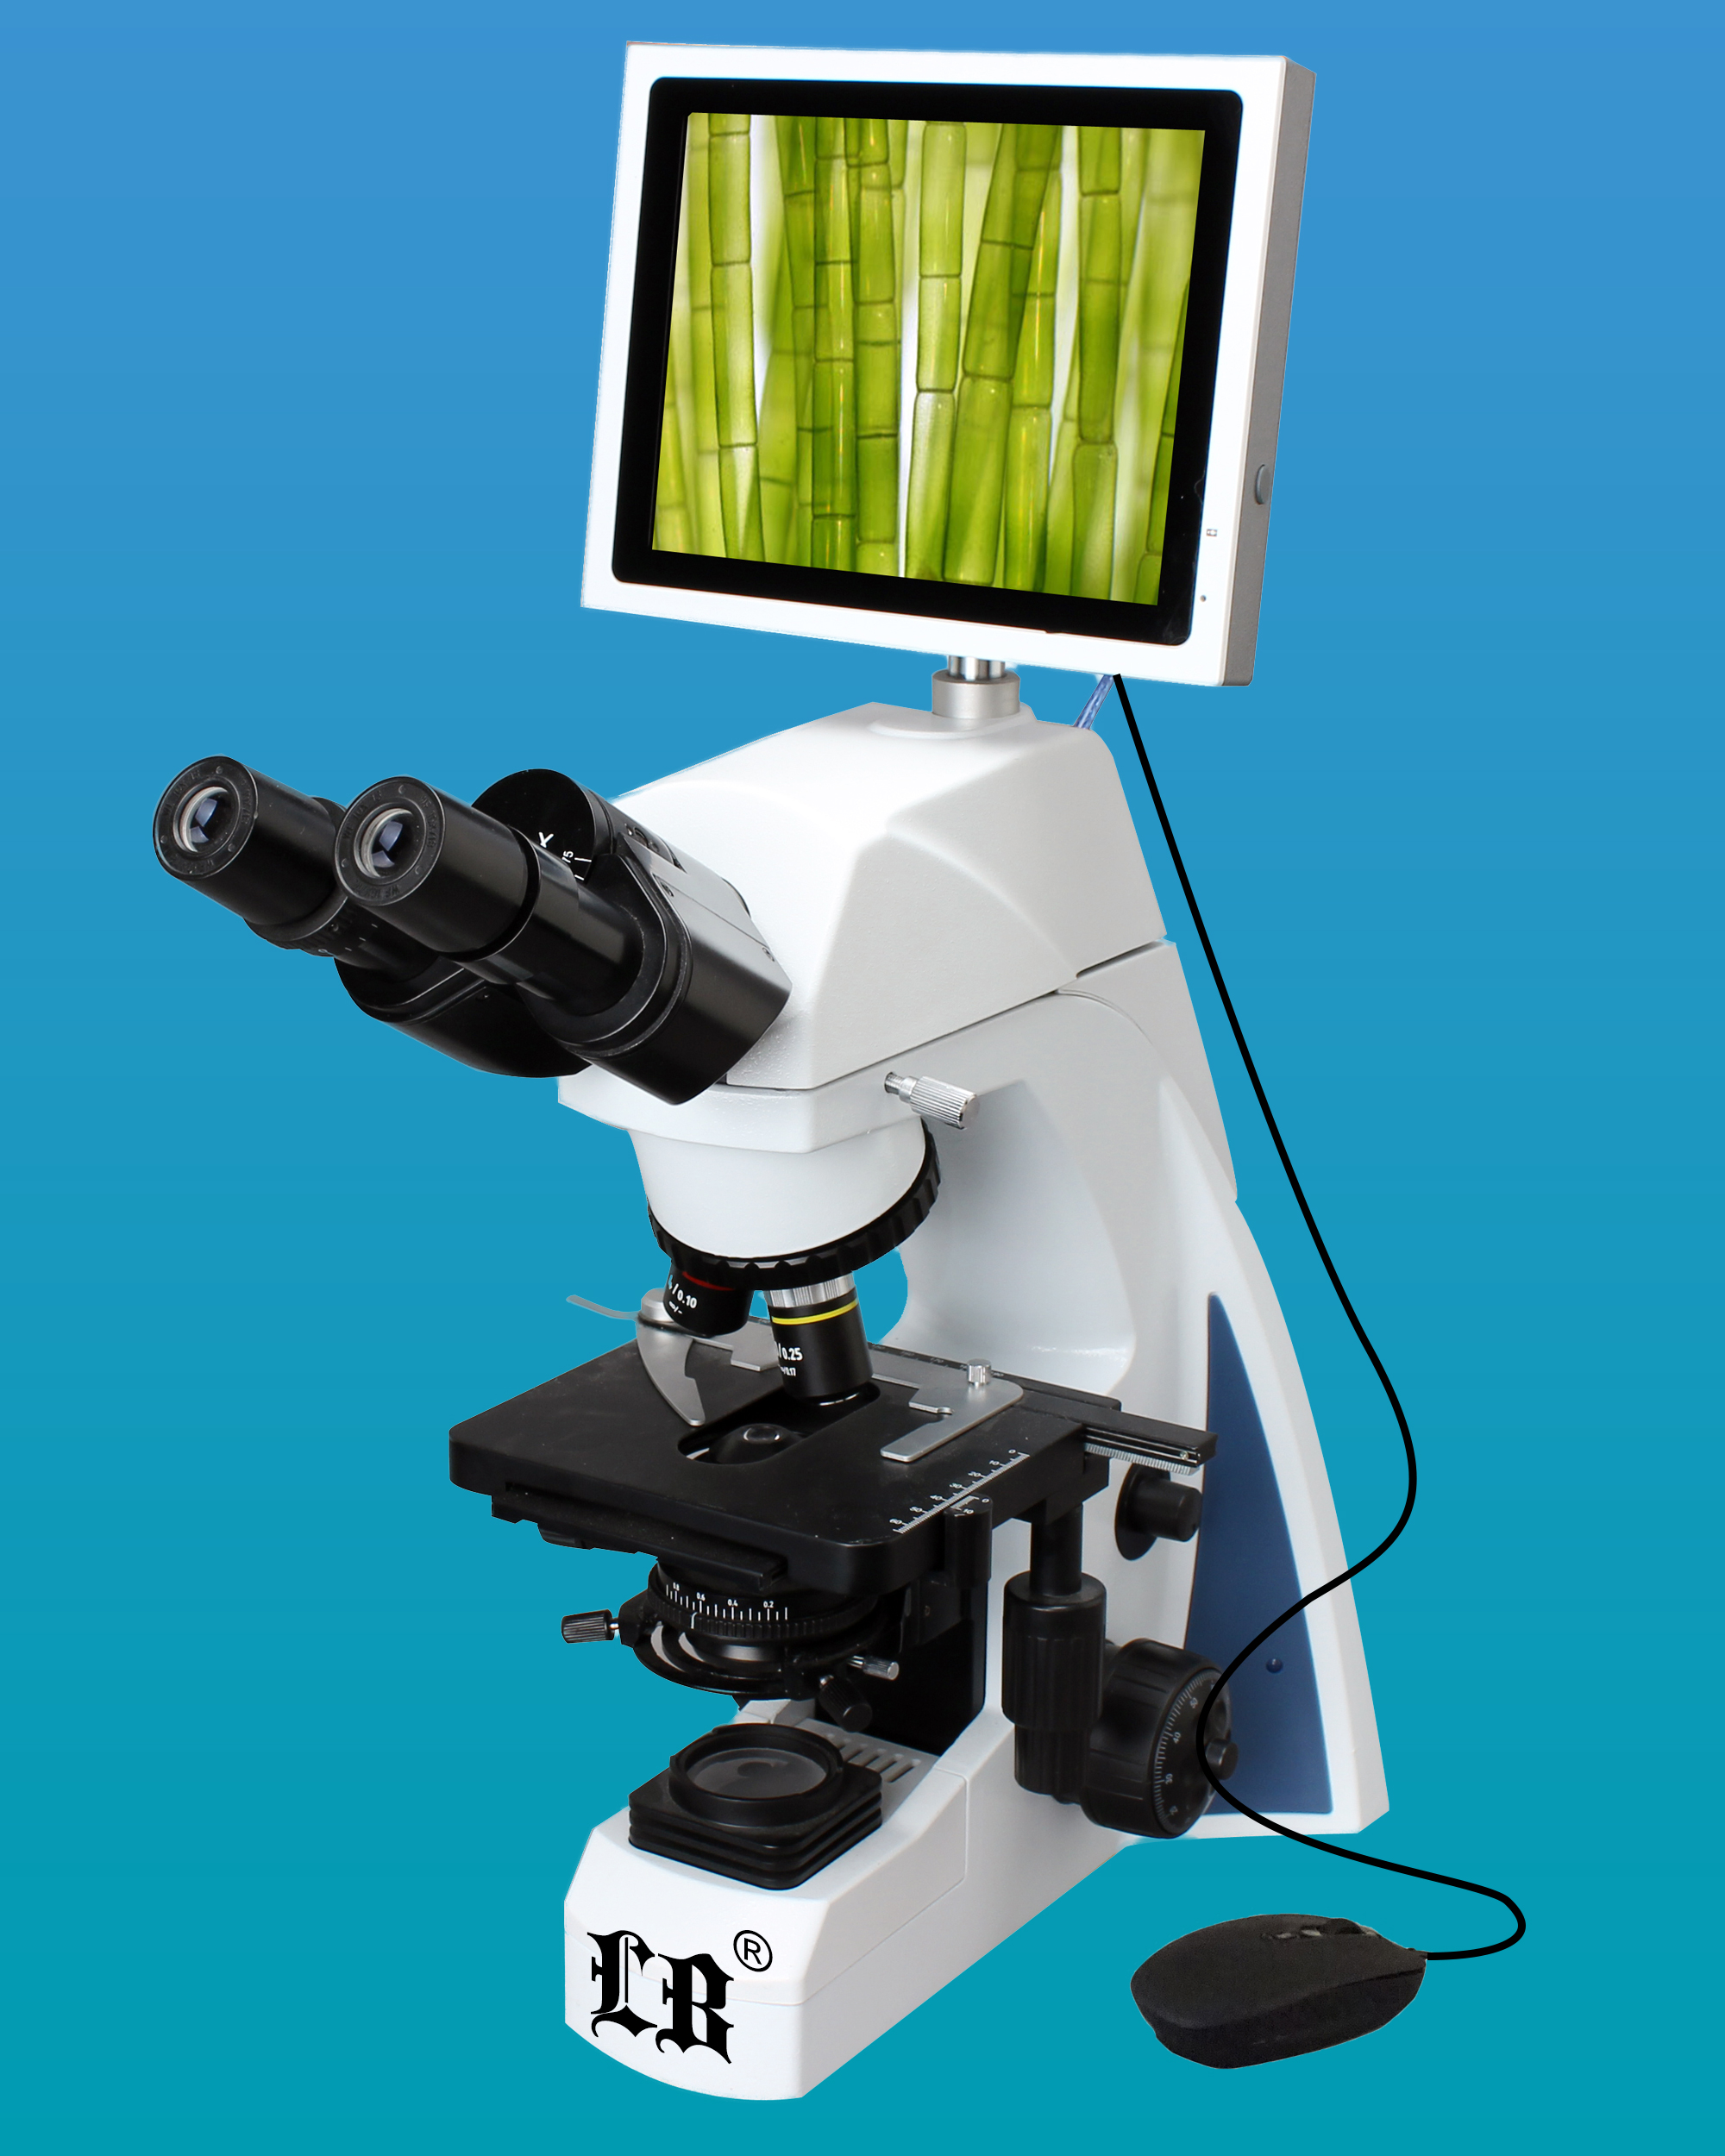 [LB-1280] Compound LCD Digital Microscope (5.0MP) w/ Extra Wide Field & Infinite Semi-Plan Optical System (Infinity Color Corrected System)